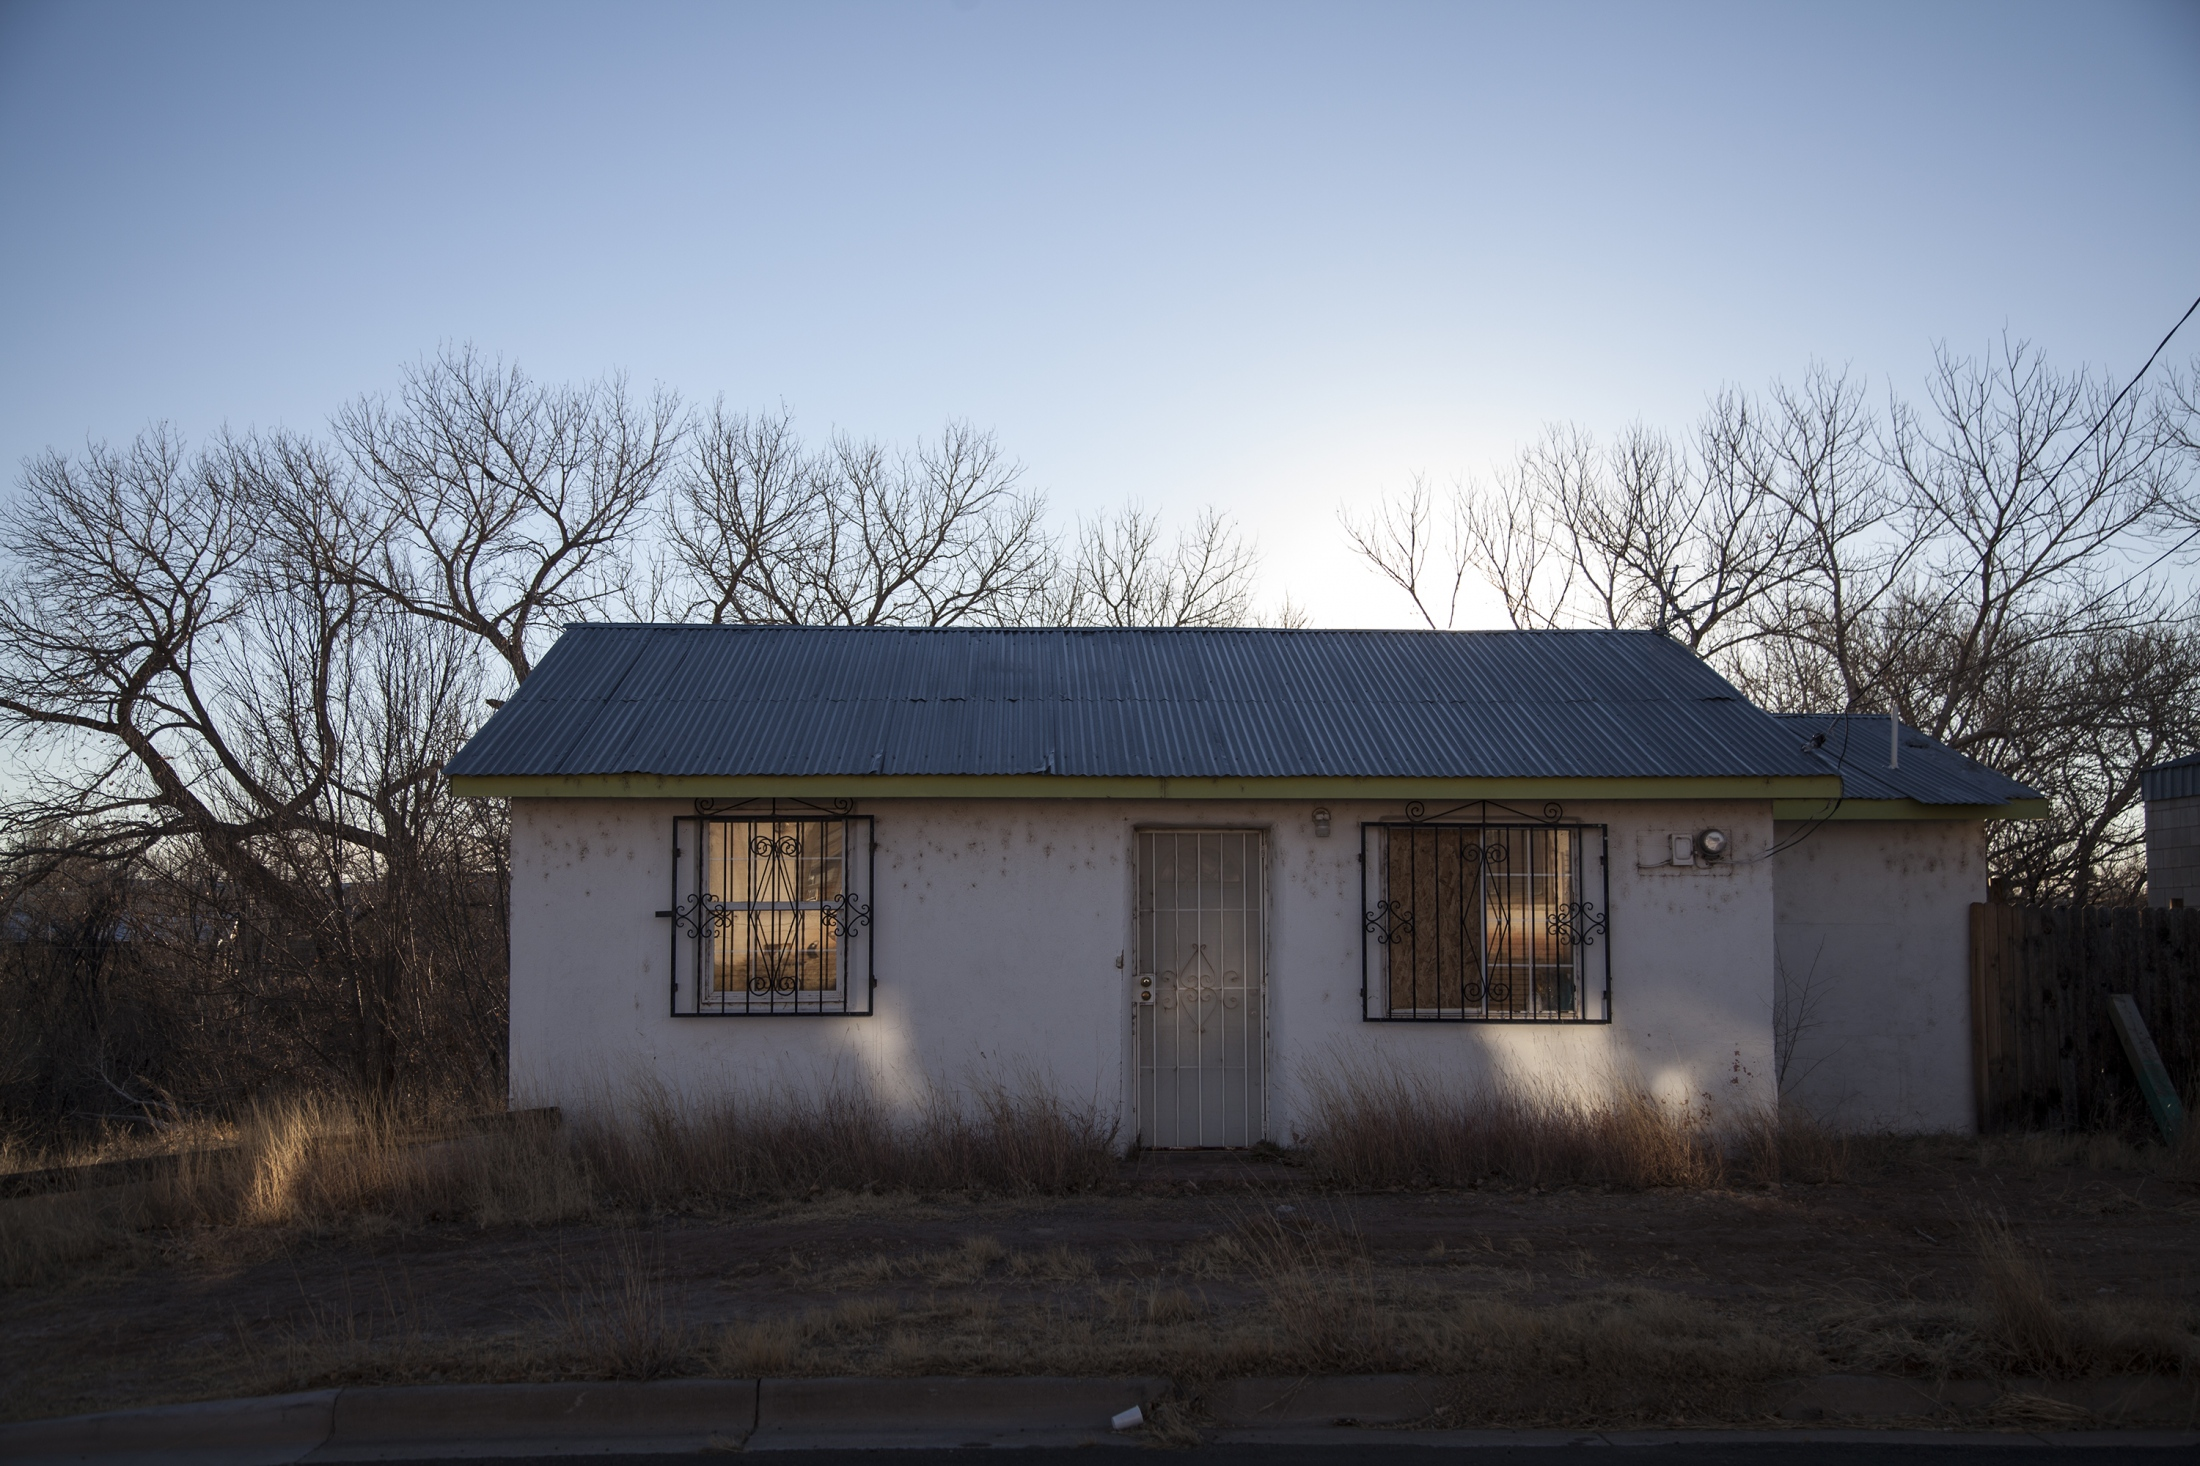 Many homes in Santa Rosa remain uninhabited and unmaintained as the owners or heirs live elsewhere. There is a substantial lack of housing in the town, leaving new residents searching for housing with many resorting to the plentiful motels and hotels in the area as permanent housing.